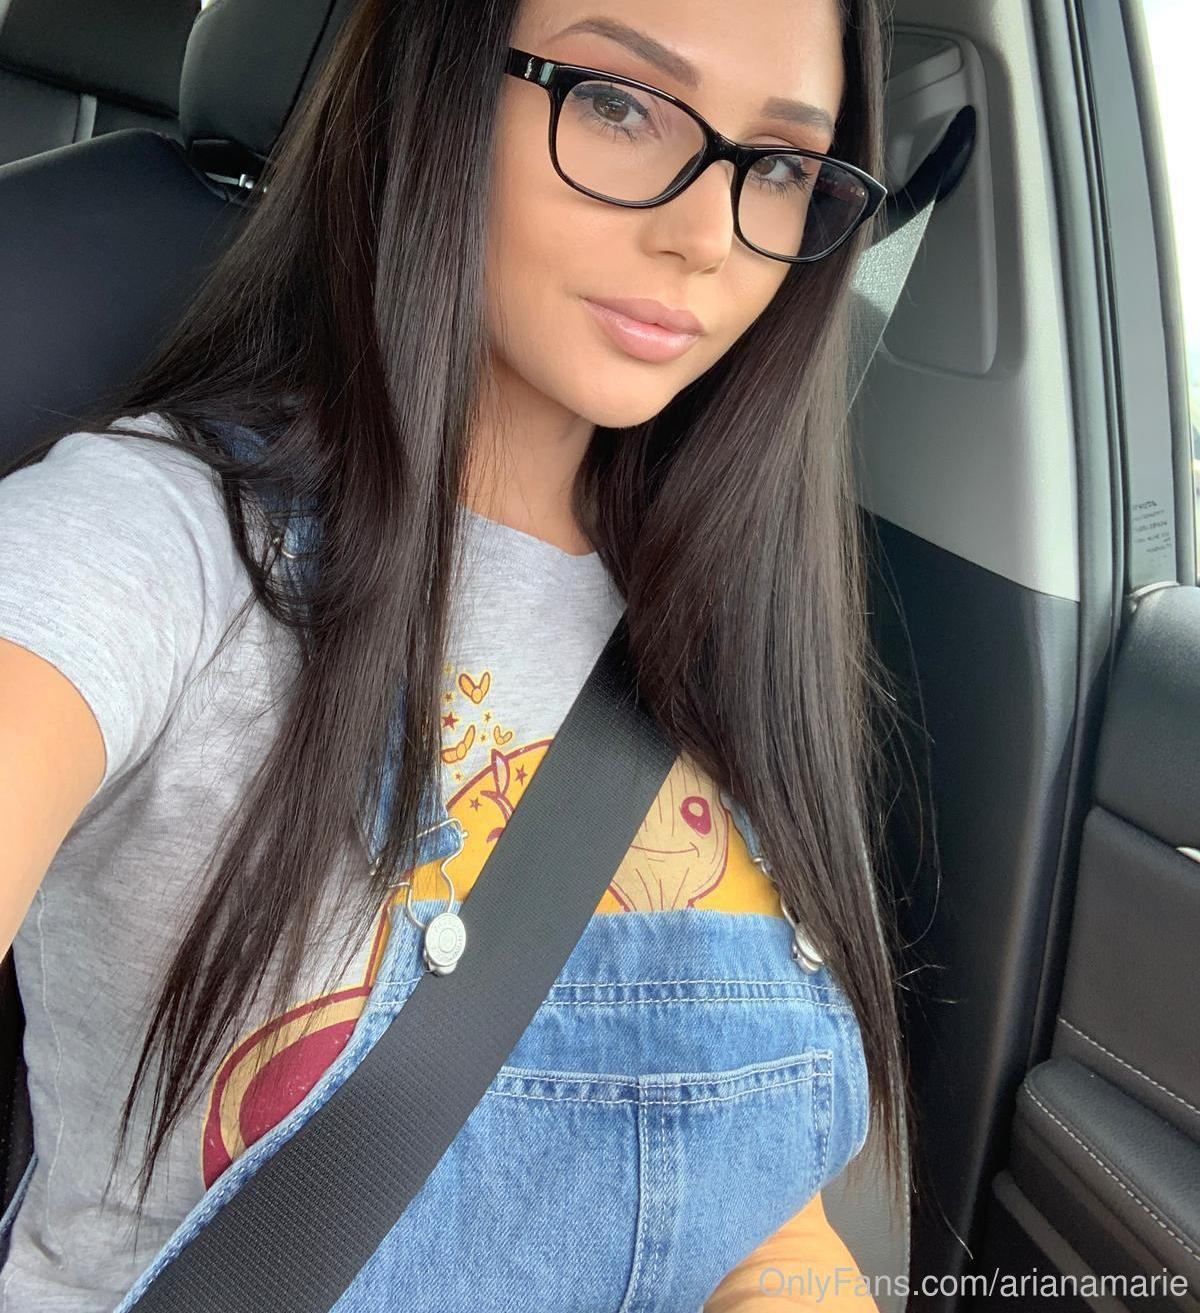 Arianamarie Onlyfans Leaked Content 0012